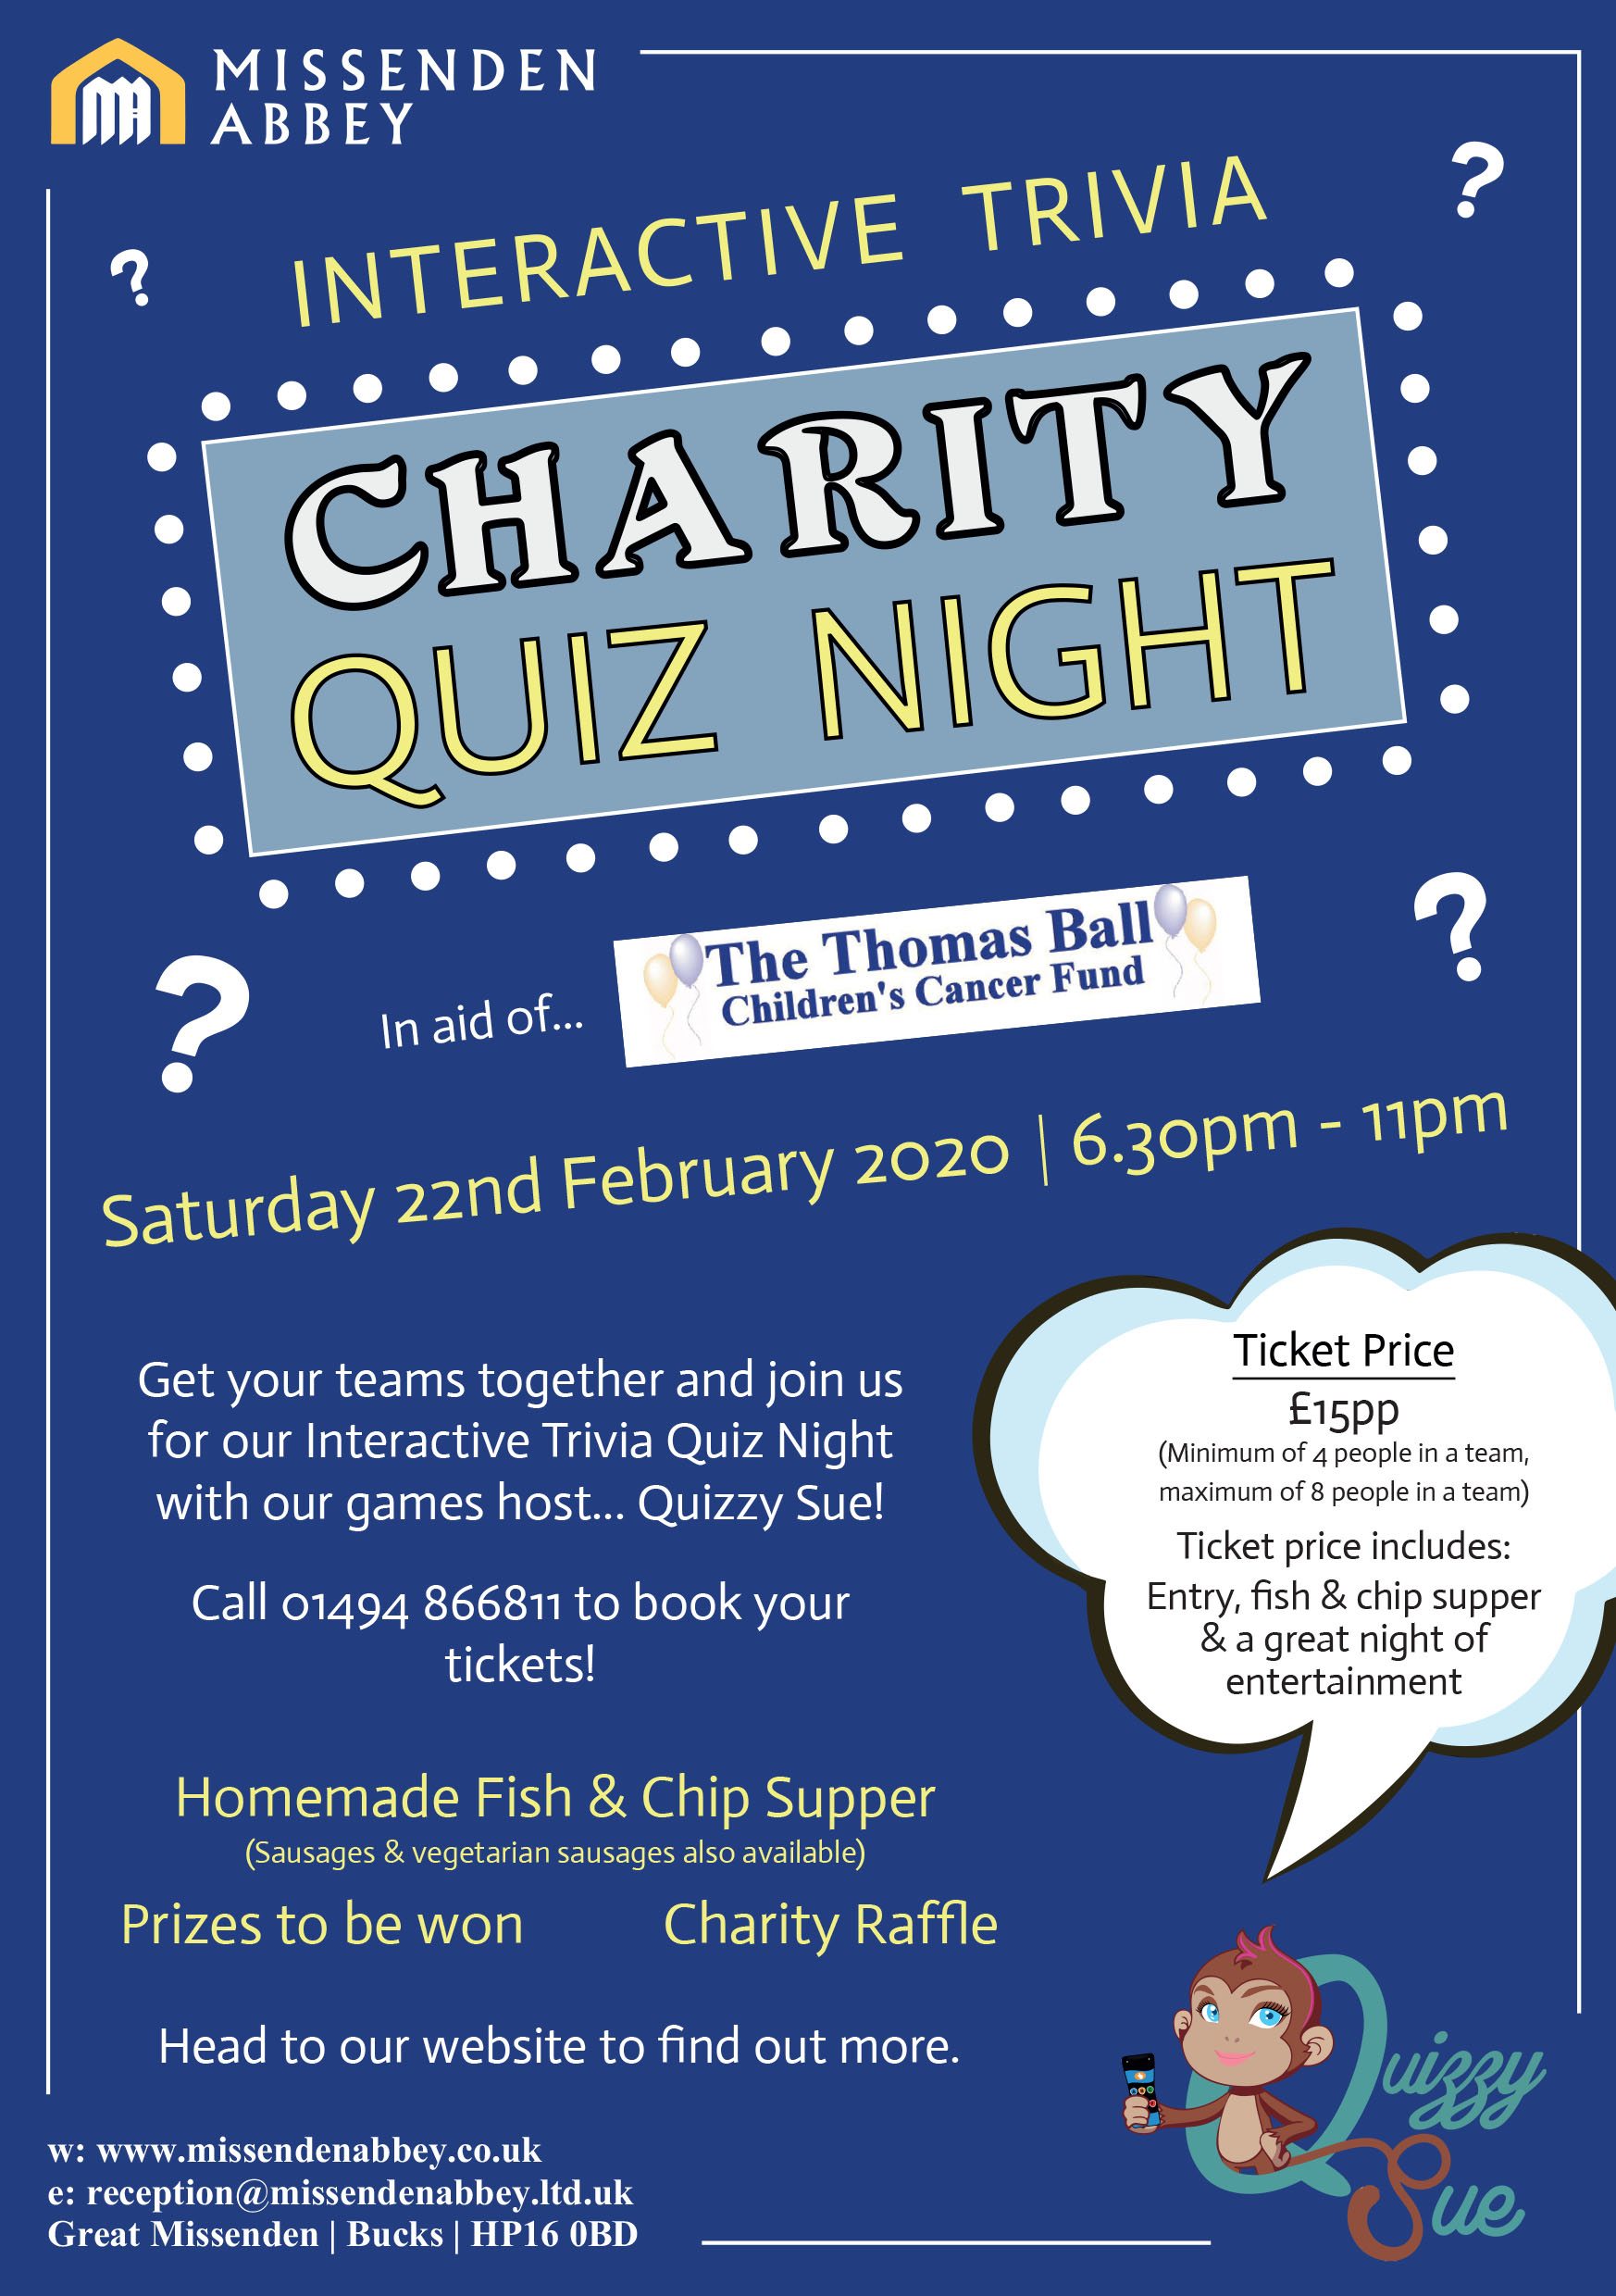 Missenden Abbey Interactive Trivia Charity Quiz Night